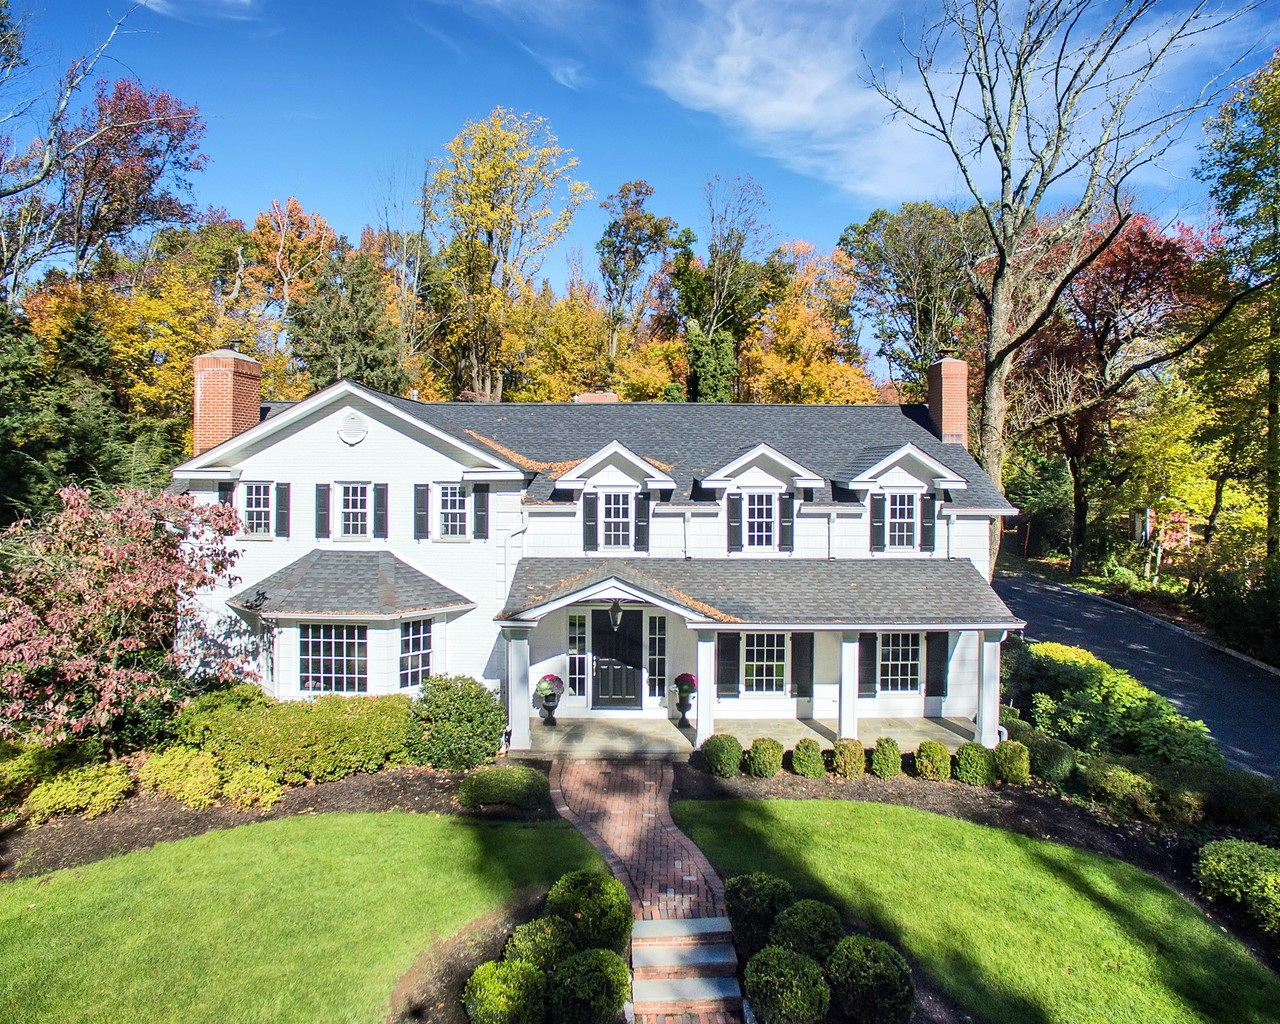 Villa per Vendita alle ore Charm and Understated Elegance 143 Oval Road Essex Fells, New Jersey, 07021 Stati Uniti